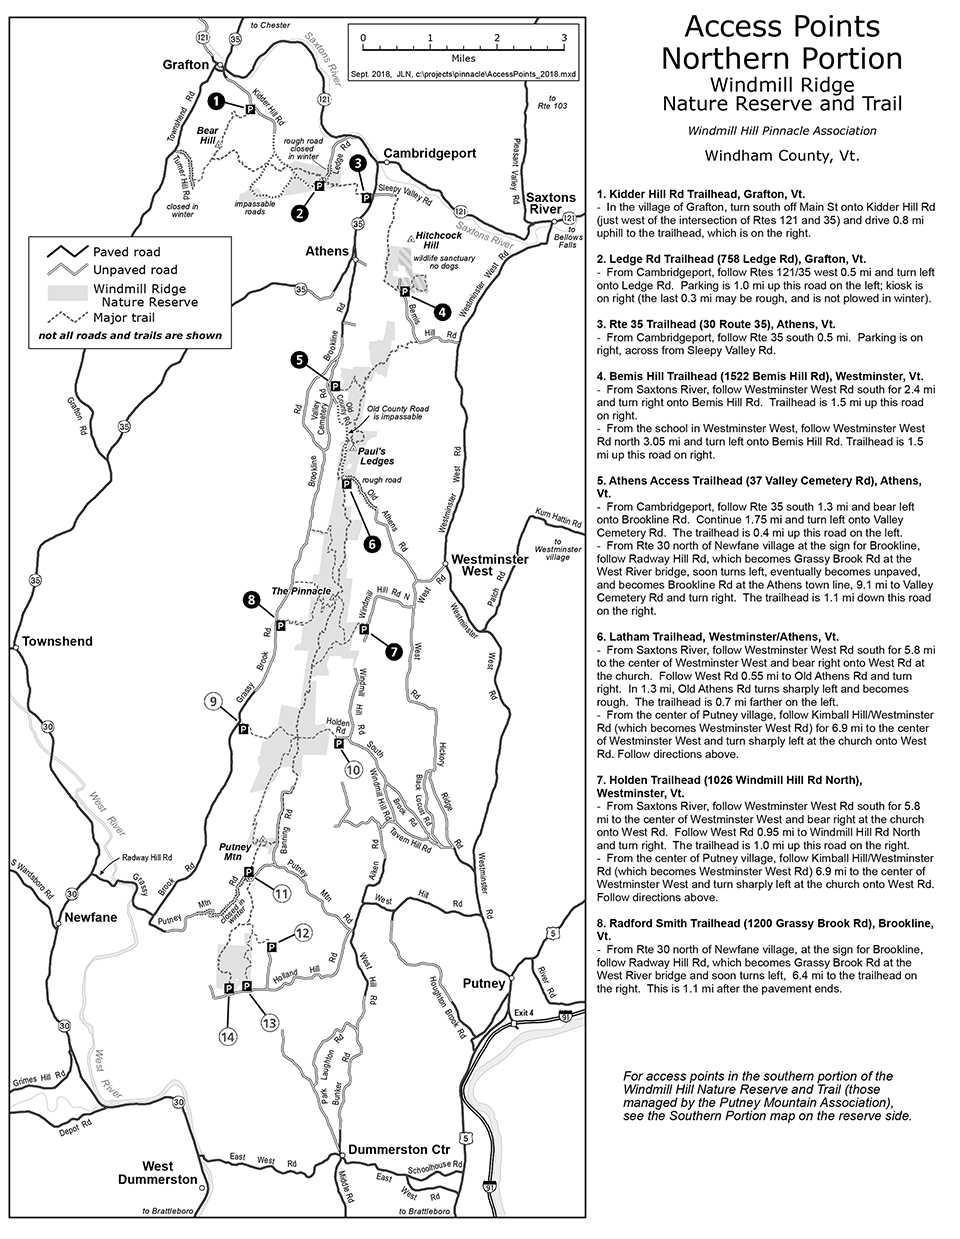 Windmill Hill Pinnacle Association Access Points Map - North Section